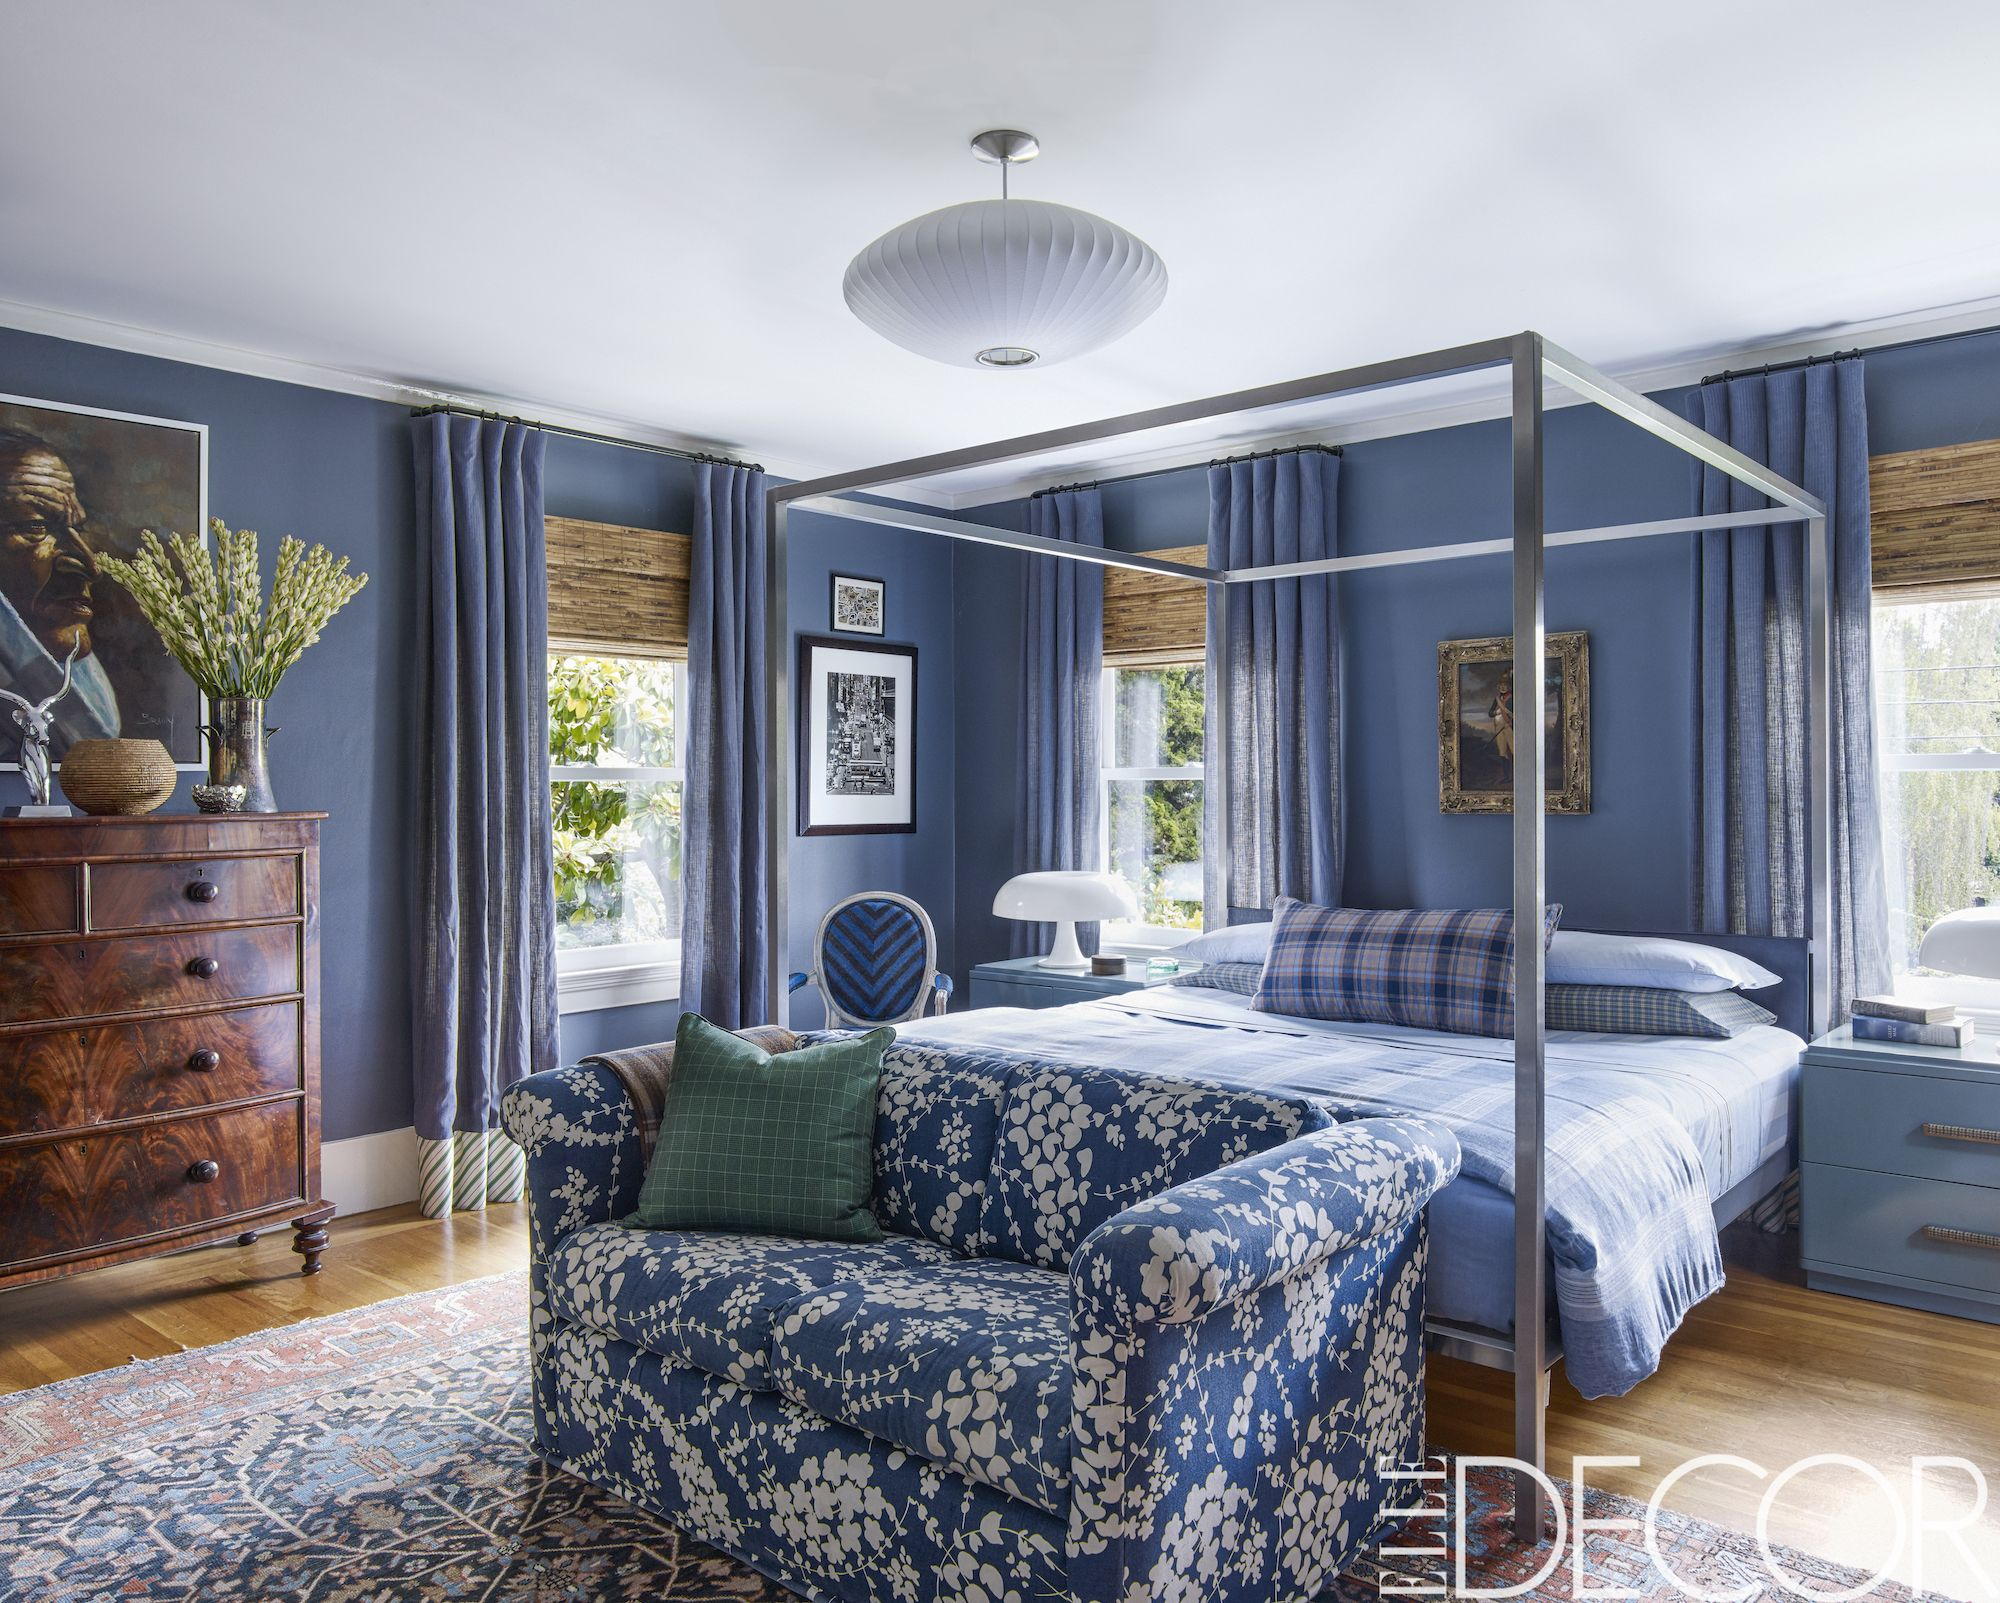 50 Blue Room Decorating Ideas How To Use Blue Wall Paint